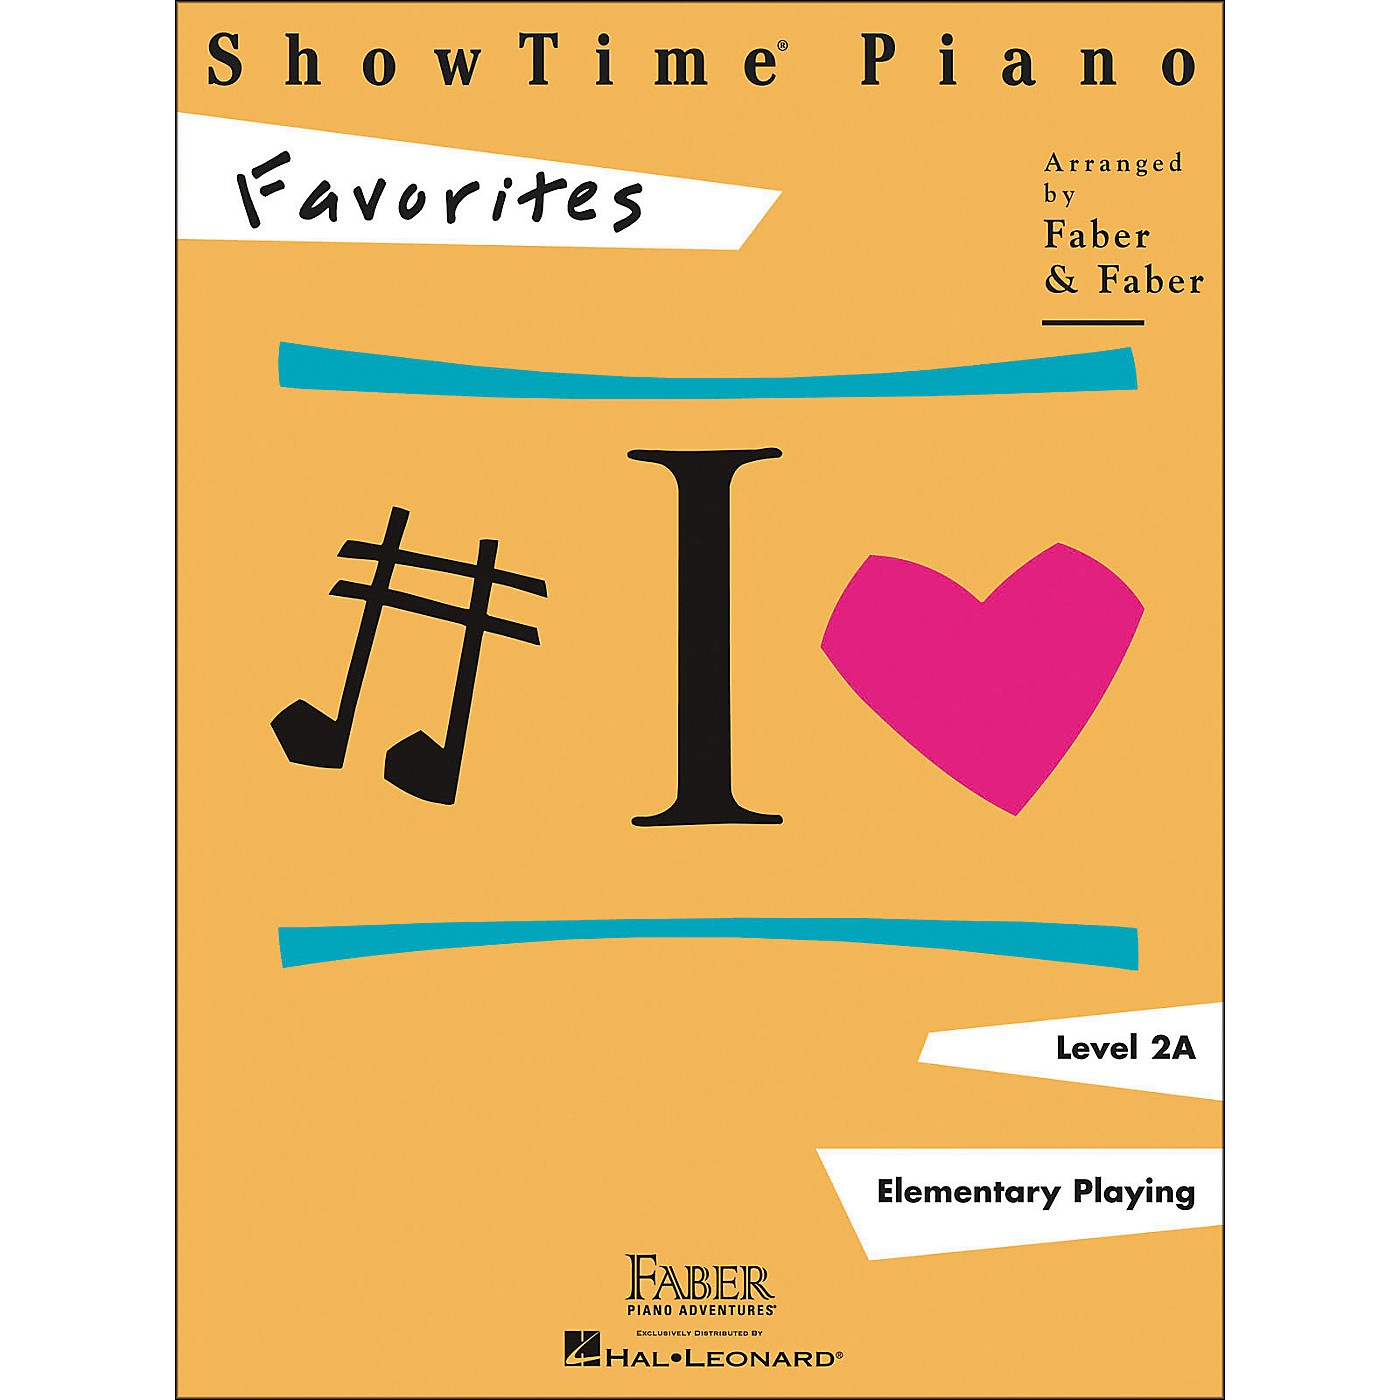 Faber Piano Adventures Showtime Piano Favorites Book Level 2A - Faber Piano thumbnail